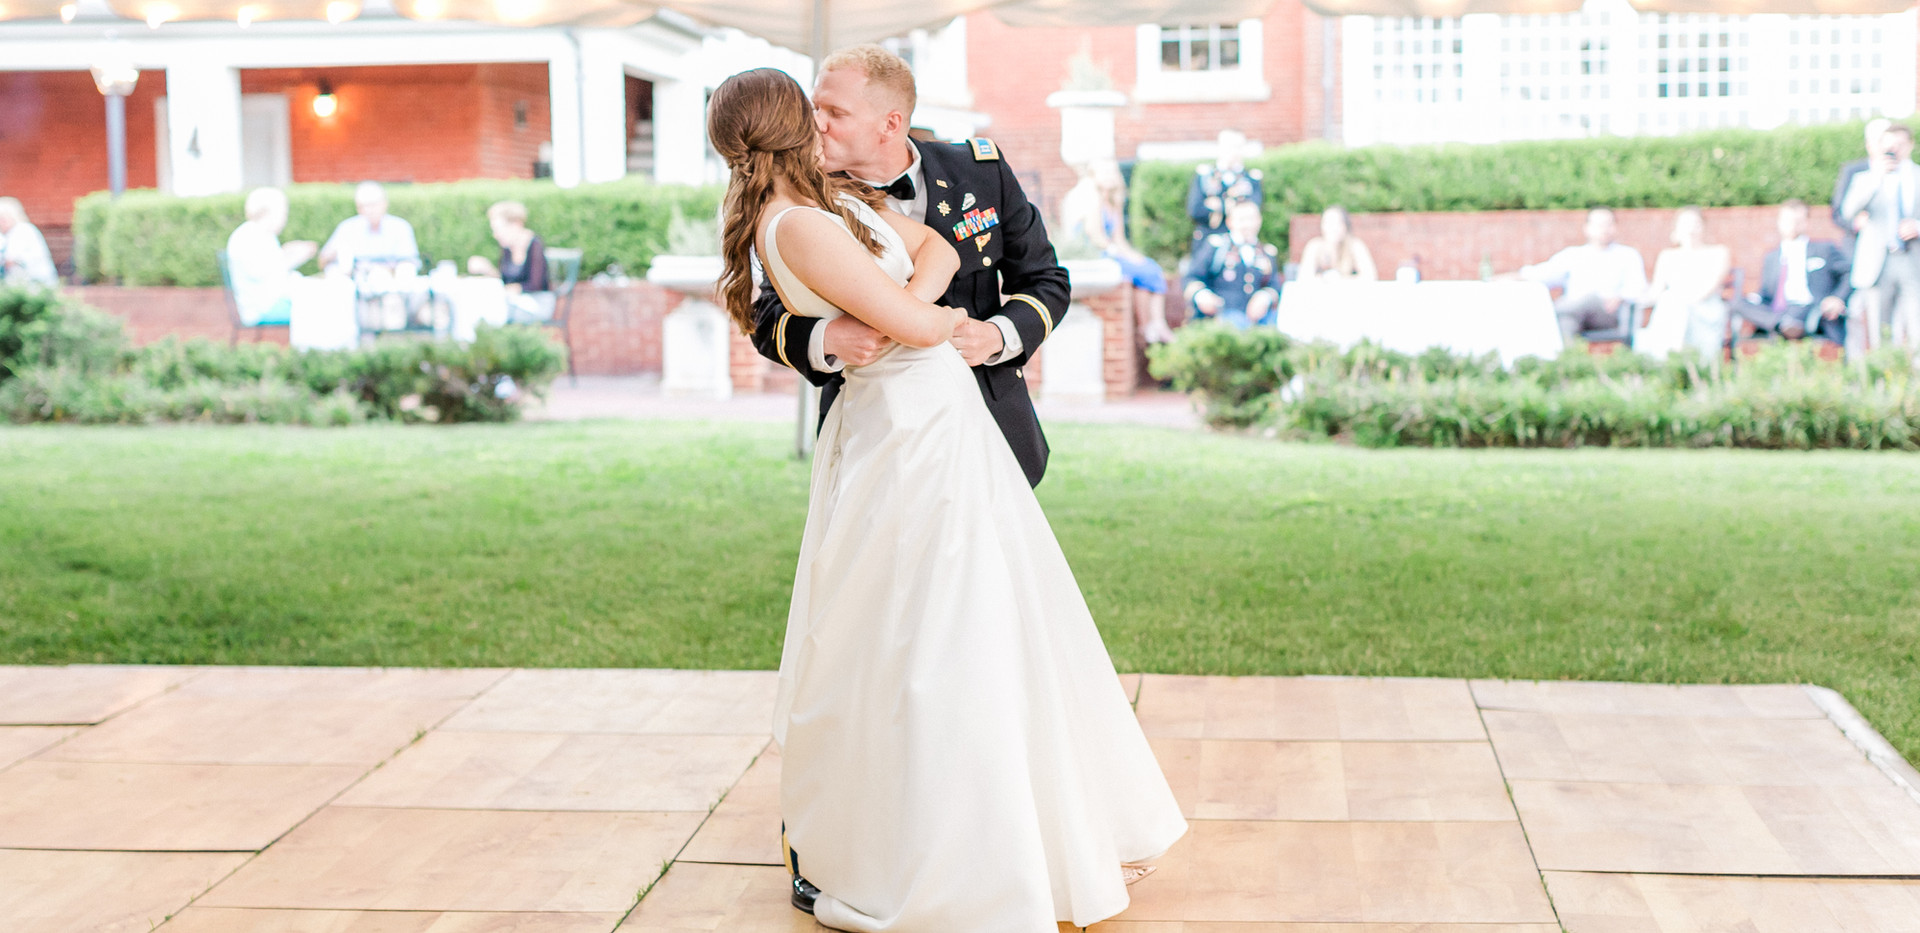 McKenzie and Taylor Wedding 2019-523.jpg